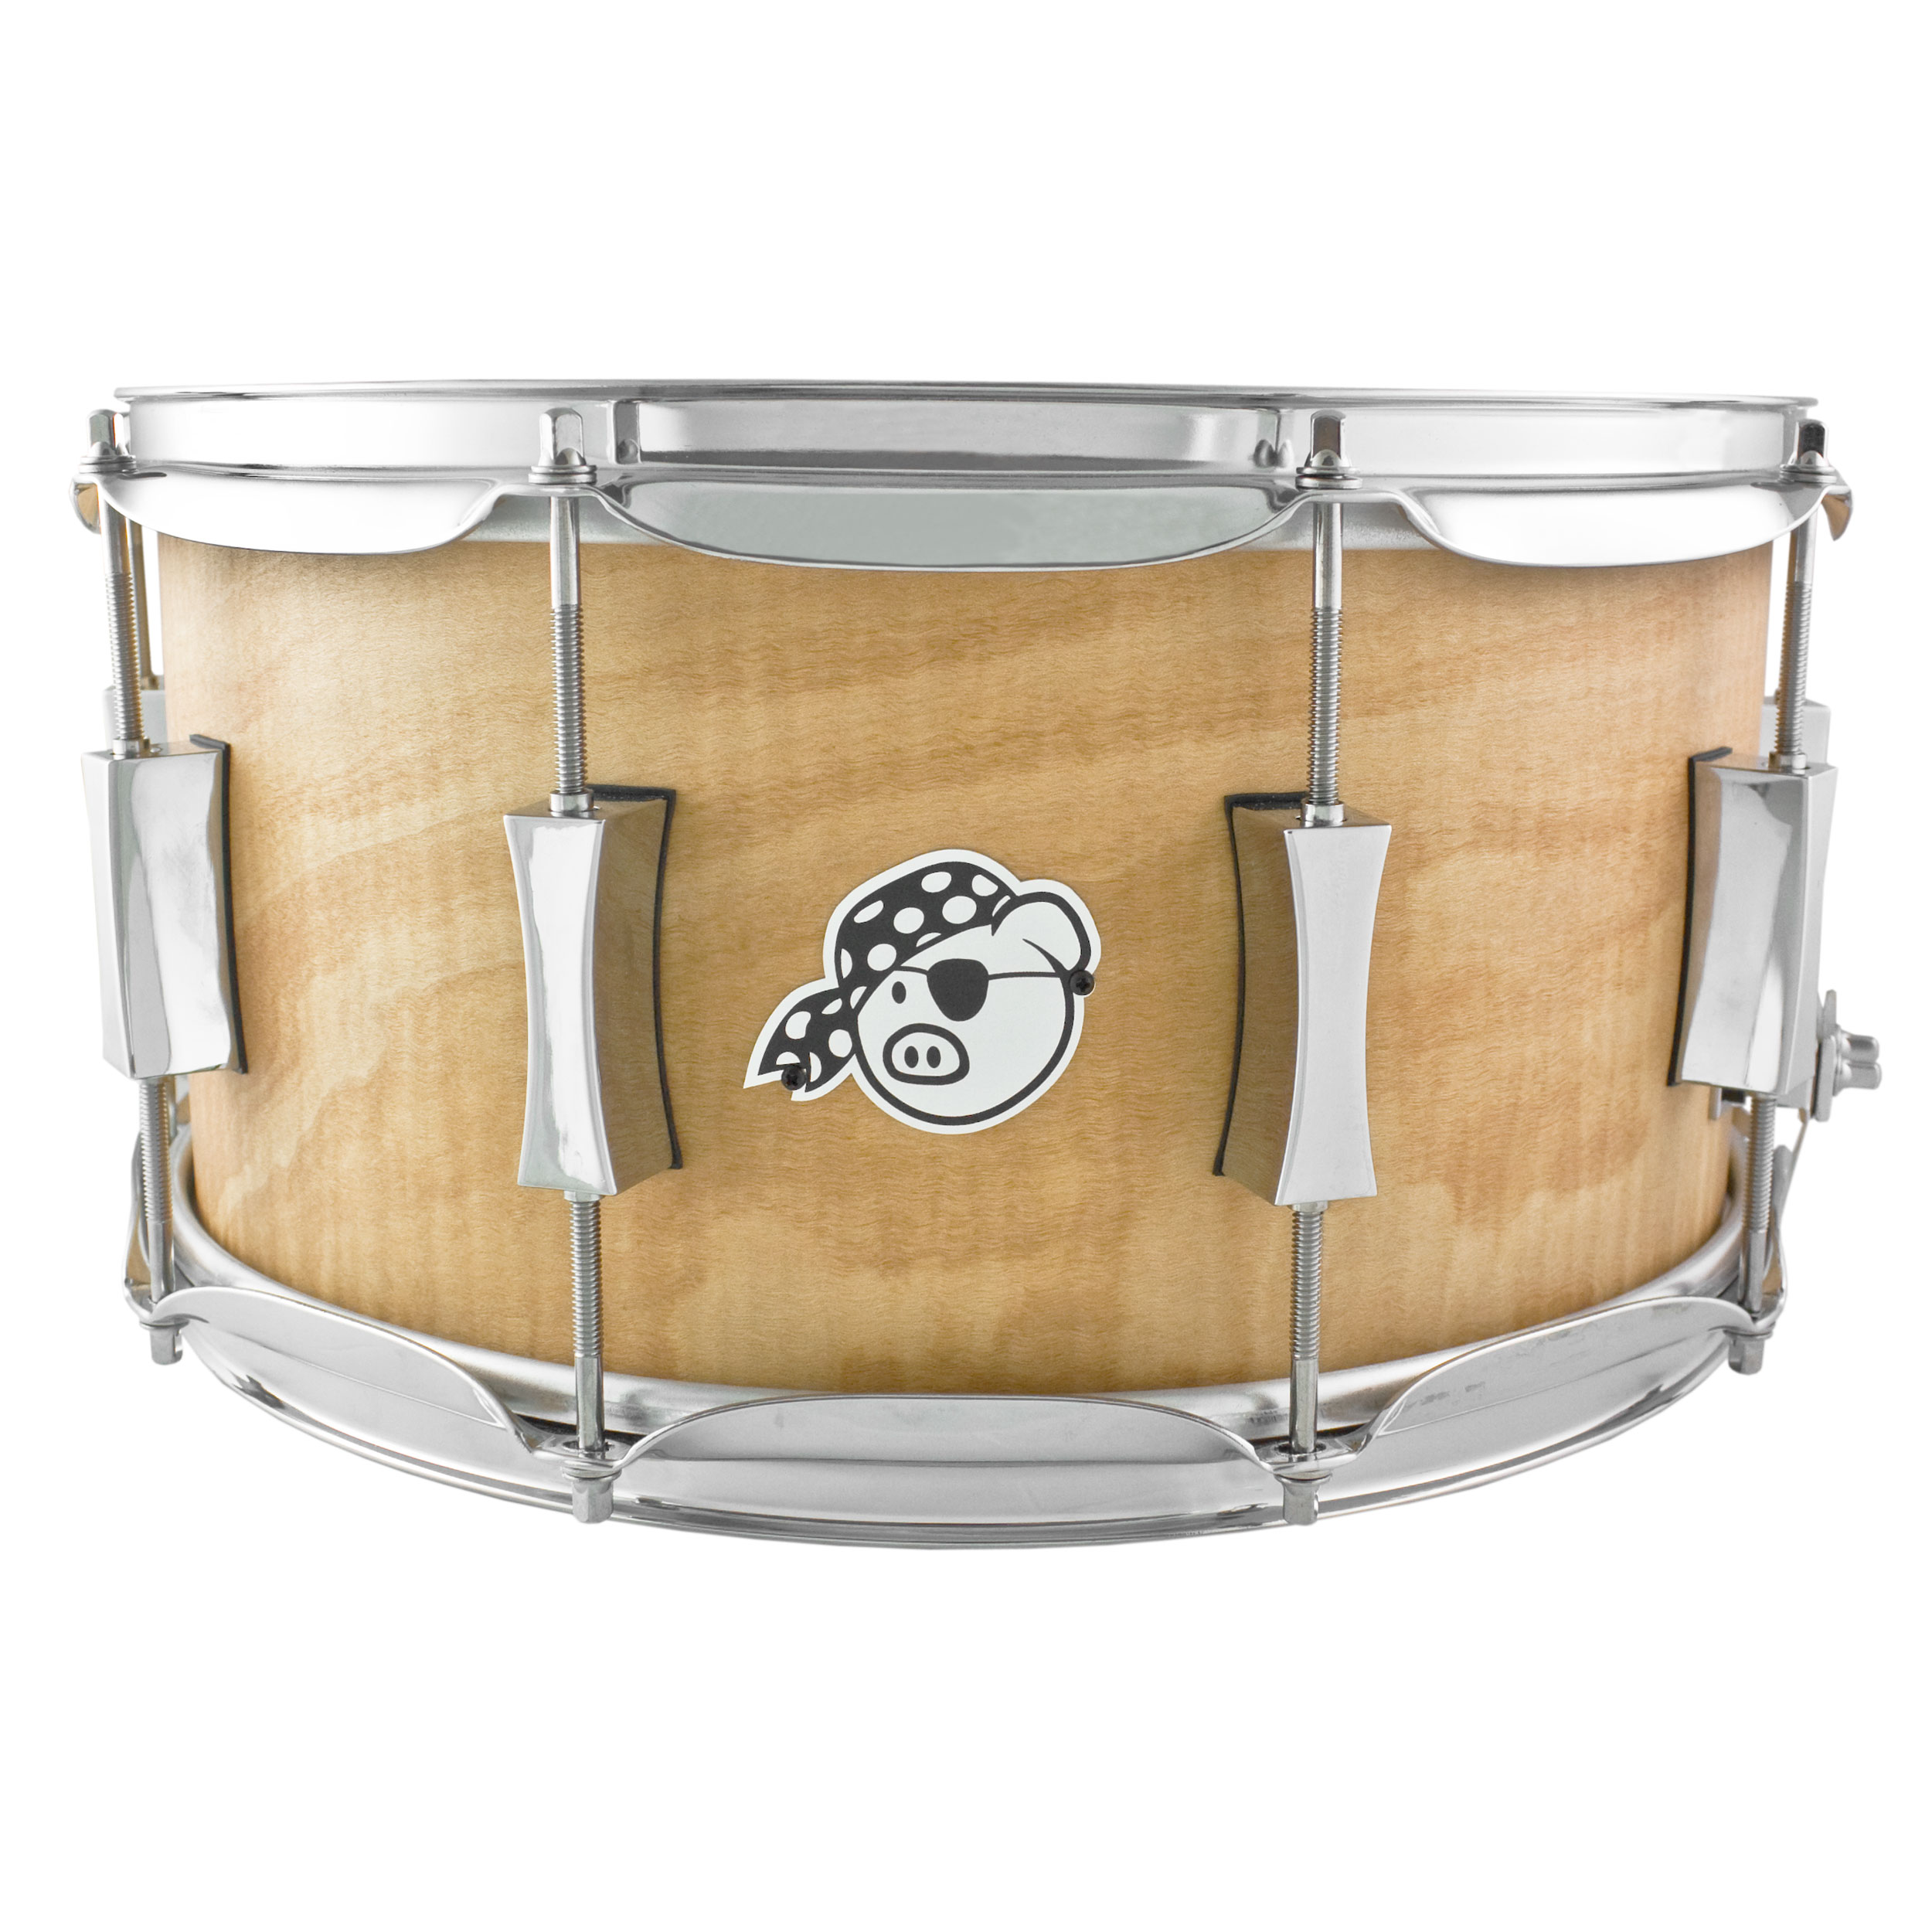 "Pork Pie Percussion 7"" x 14"" P"